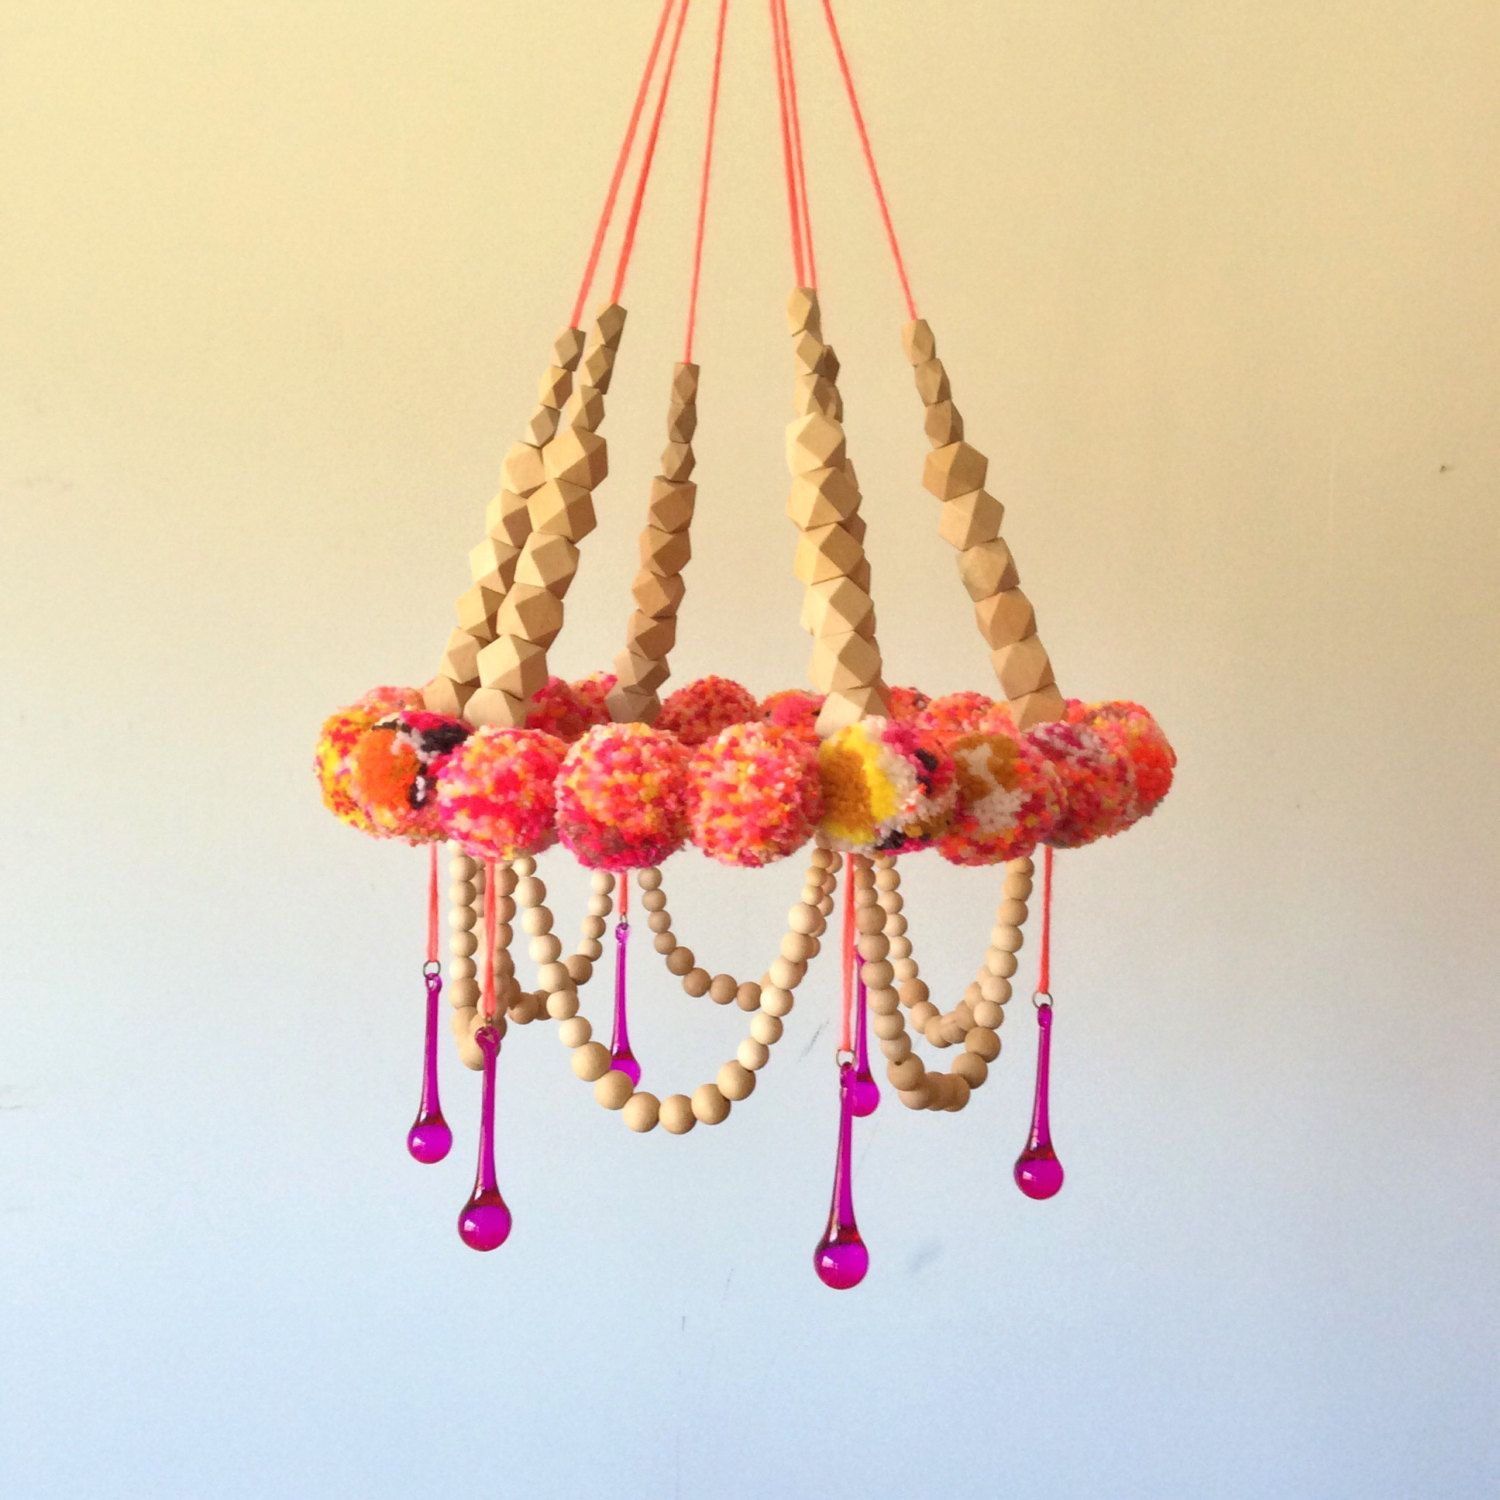 Wall Hanging Mobile PomPom Nursery Handmade Fiber Art Sculpture ...